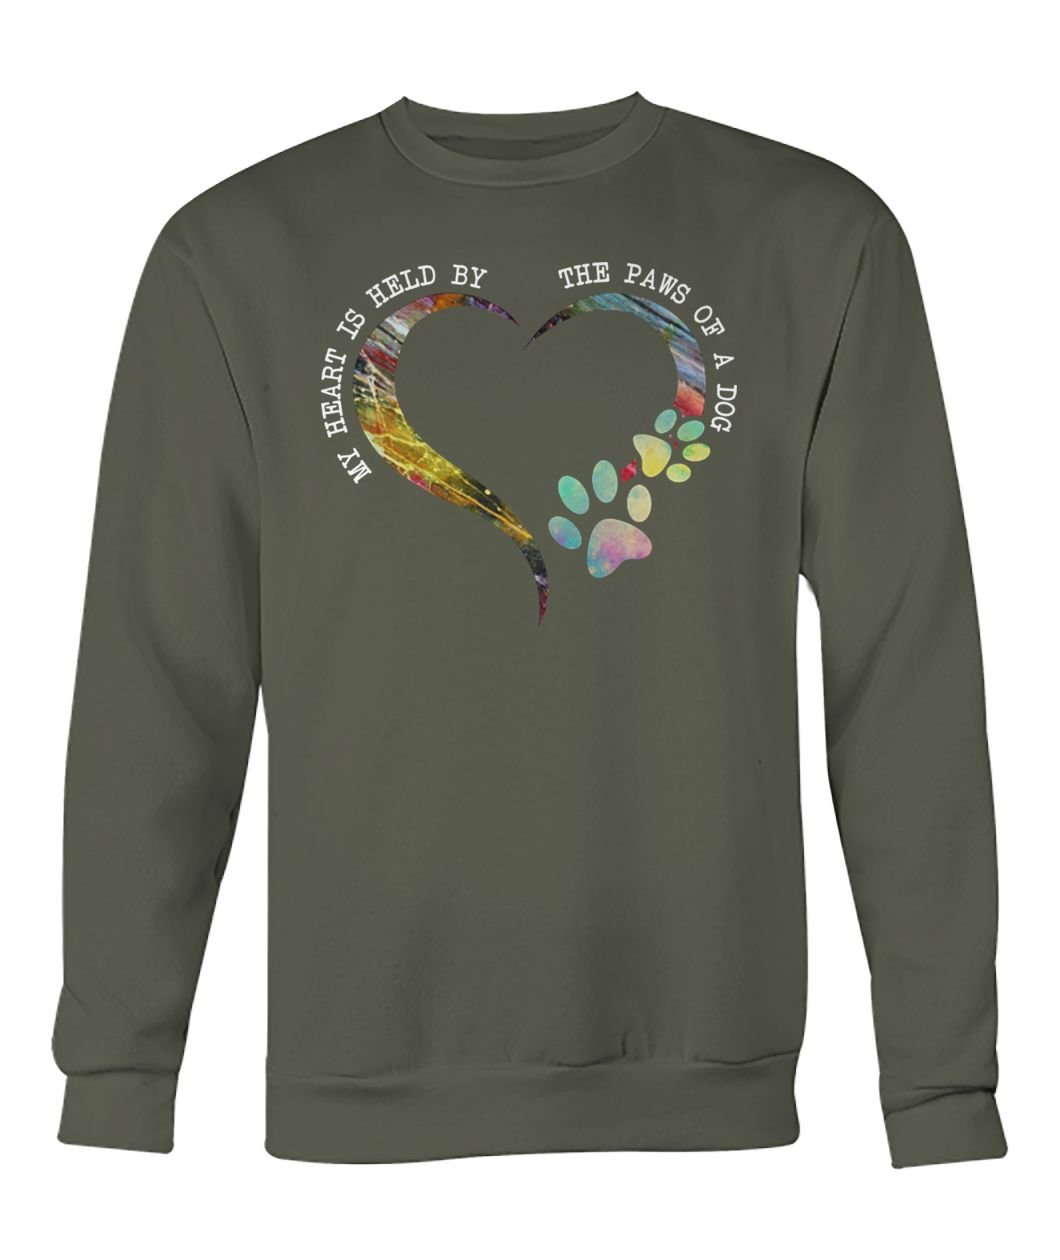 My heart is held by the paws of a dog crew neck sweatshirt